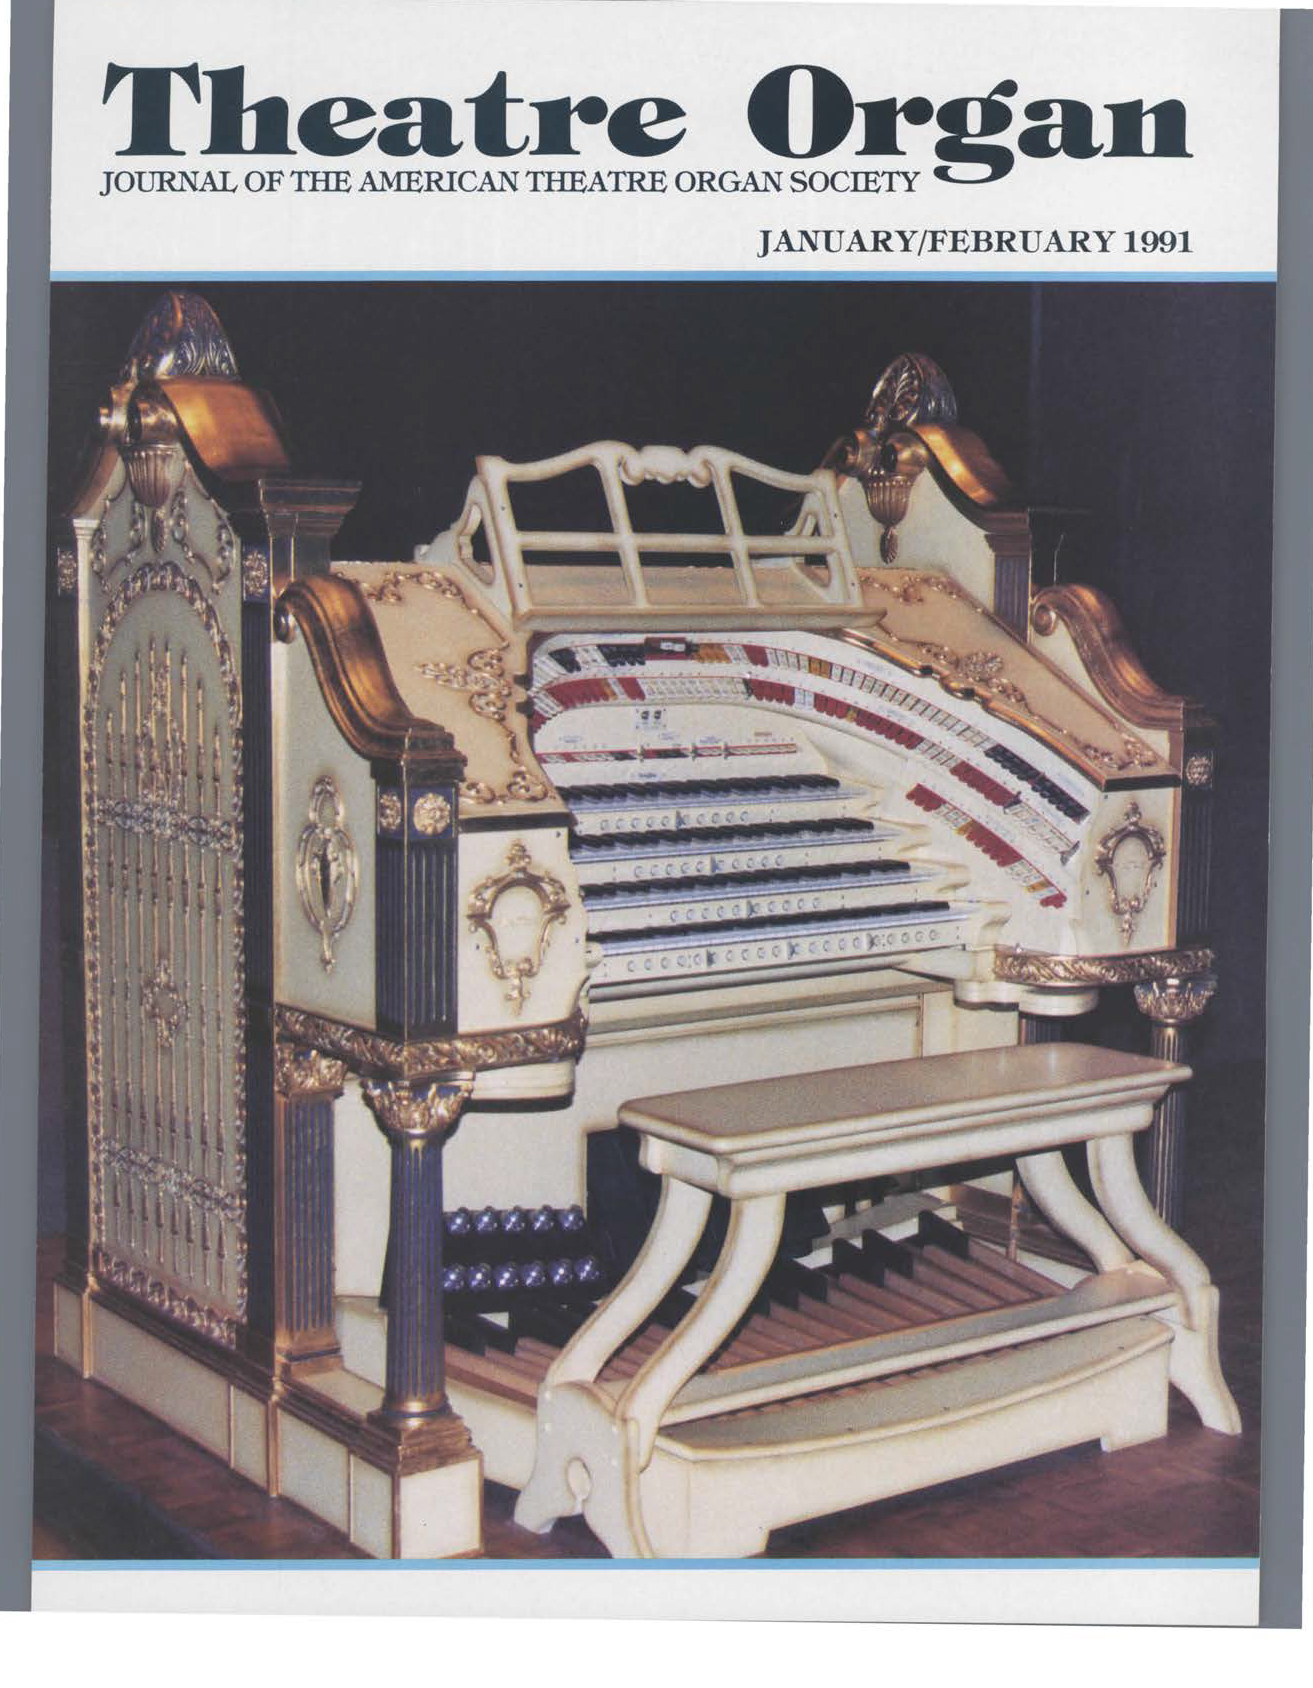 Theatre Organ, January - February 1991, Volume 33, Number 1